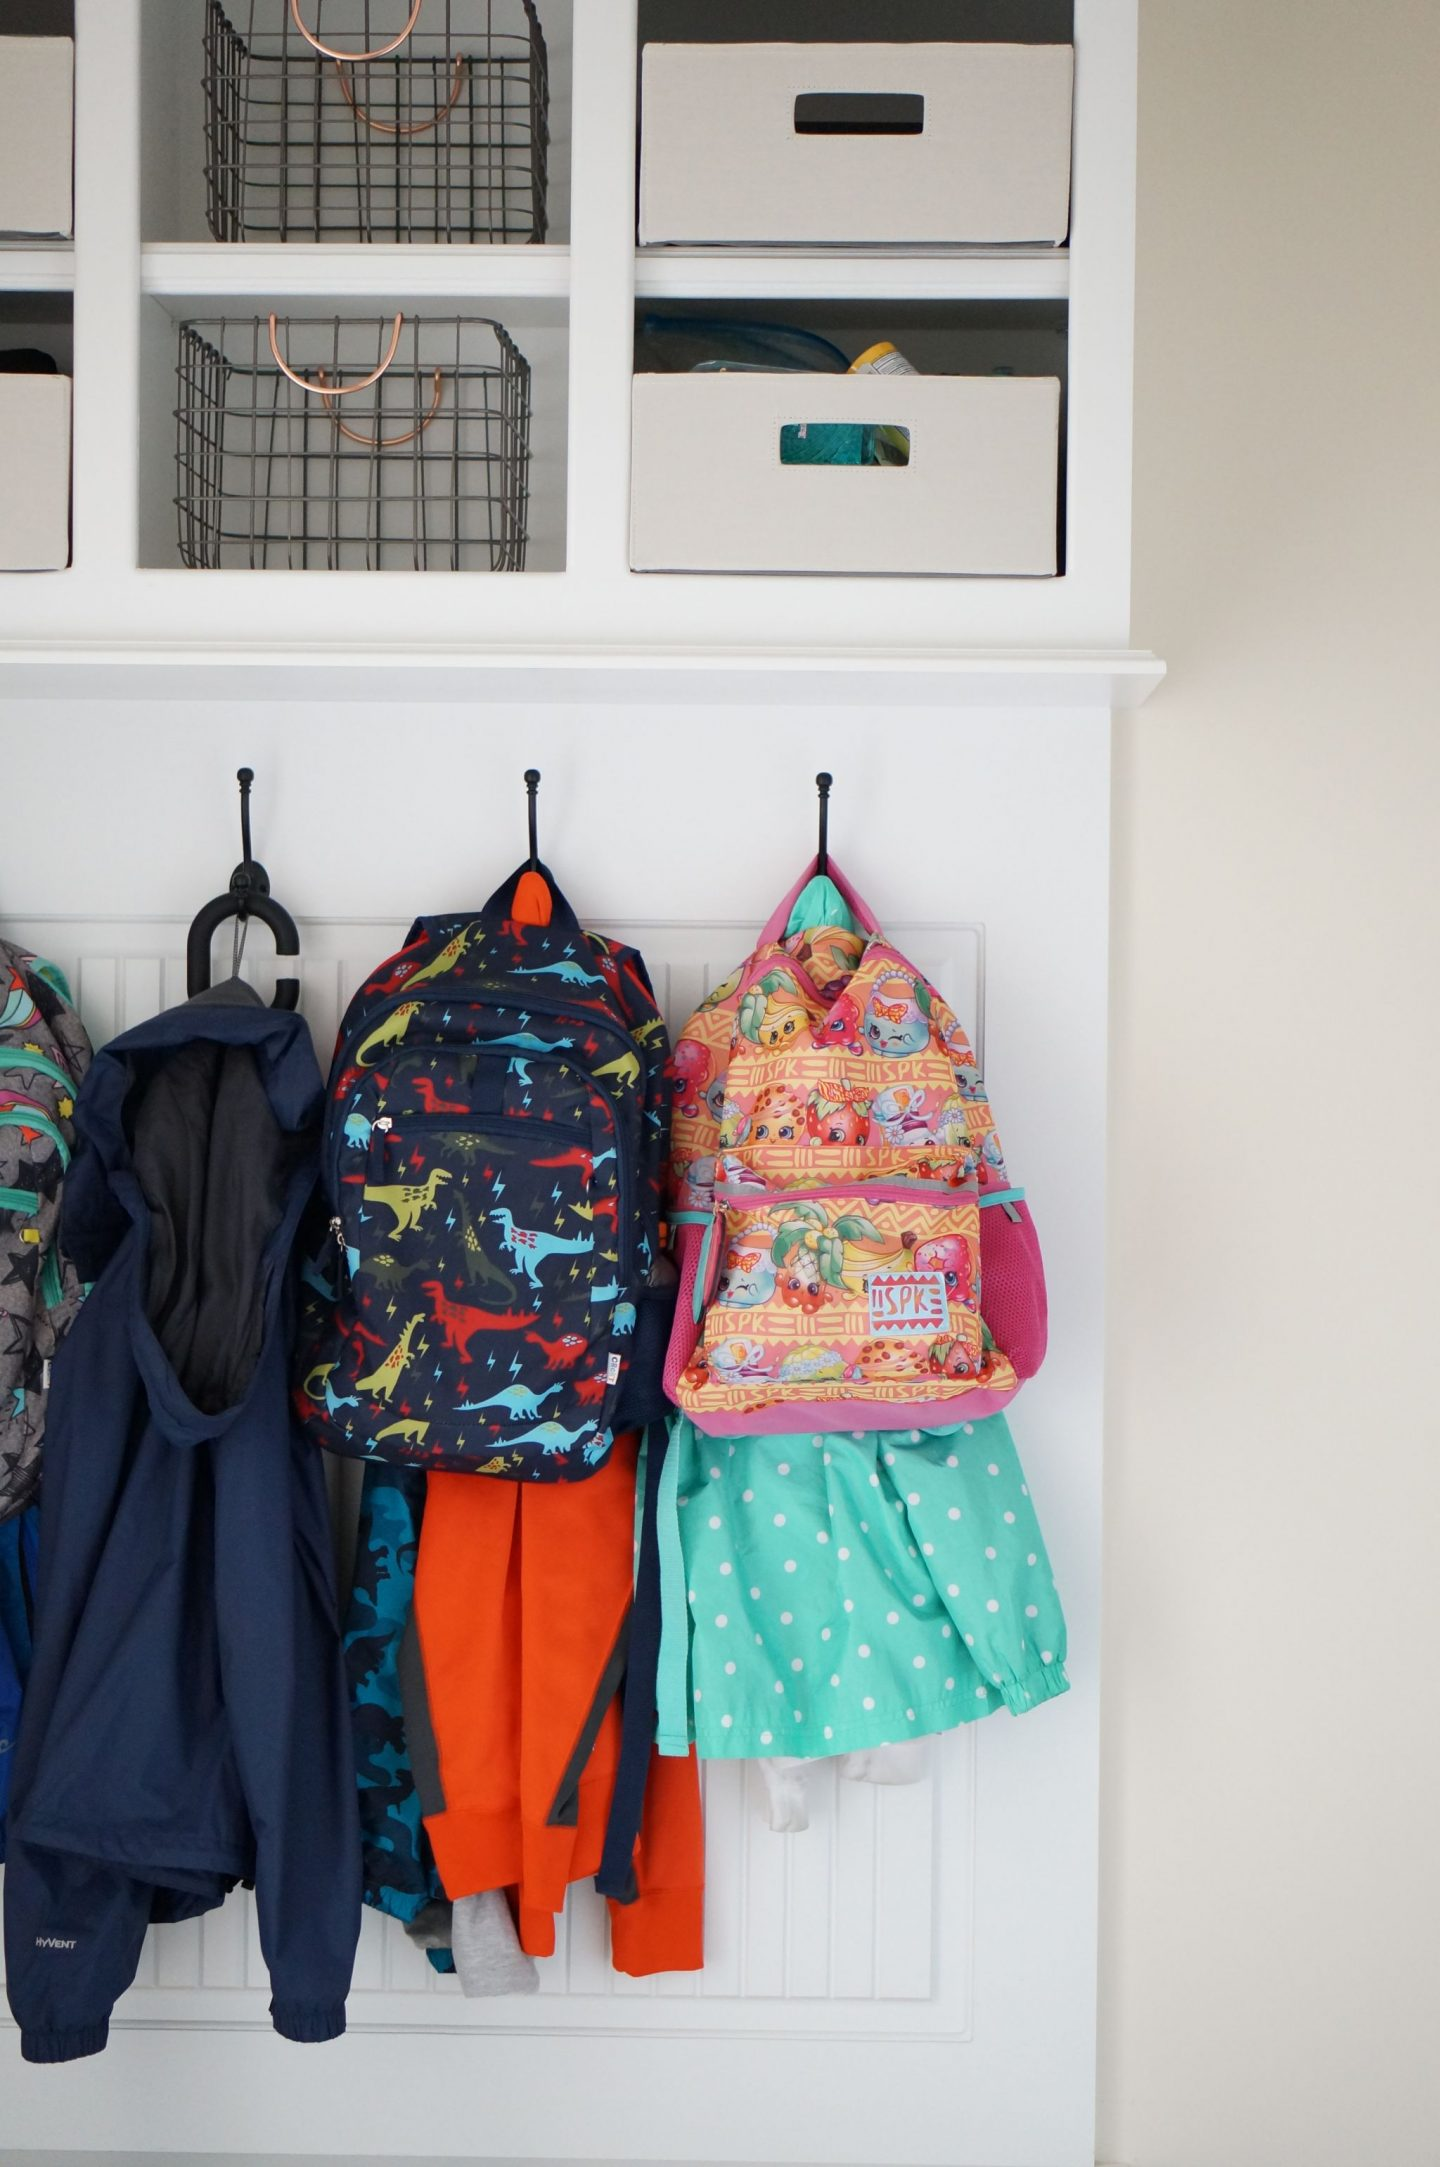 We're getting ready for school over here!  Here are four ways I'm keeping my sanity, staying organized, and making it fun along the way.